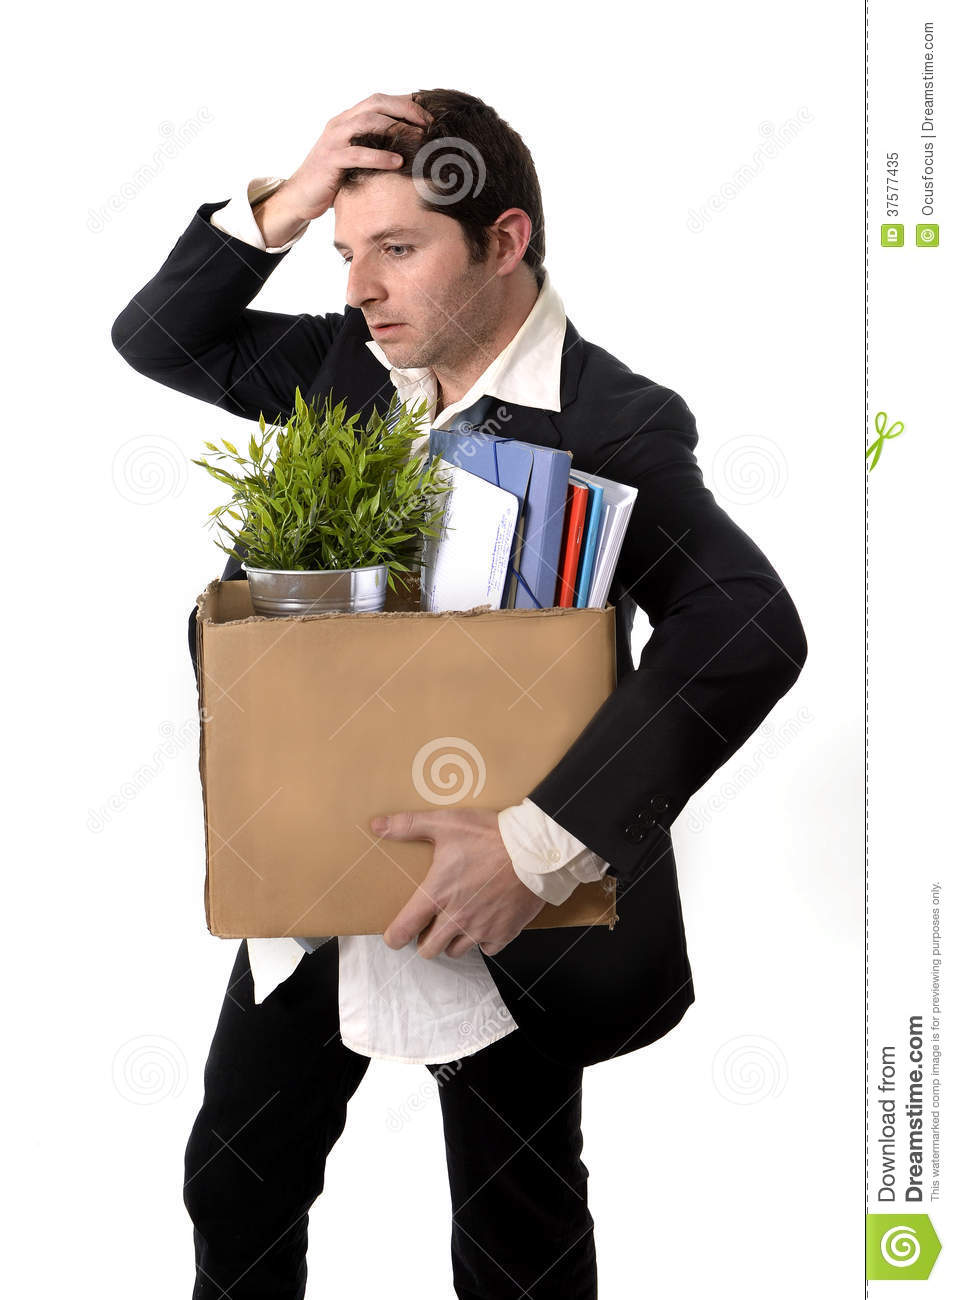 messy-business-man-cardboard-box-fired-job-37577435.jpg